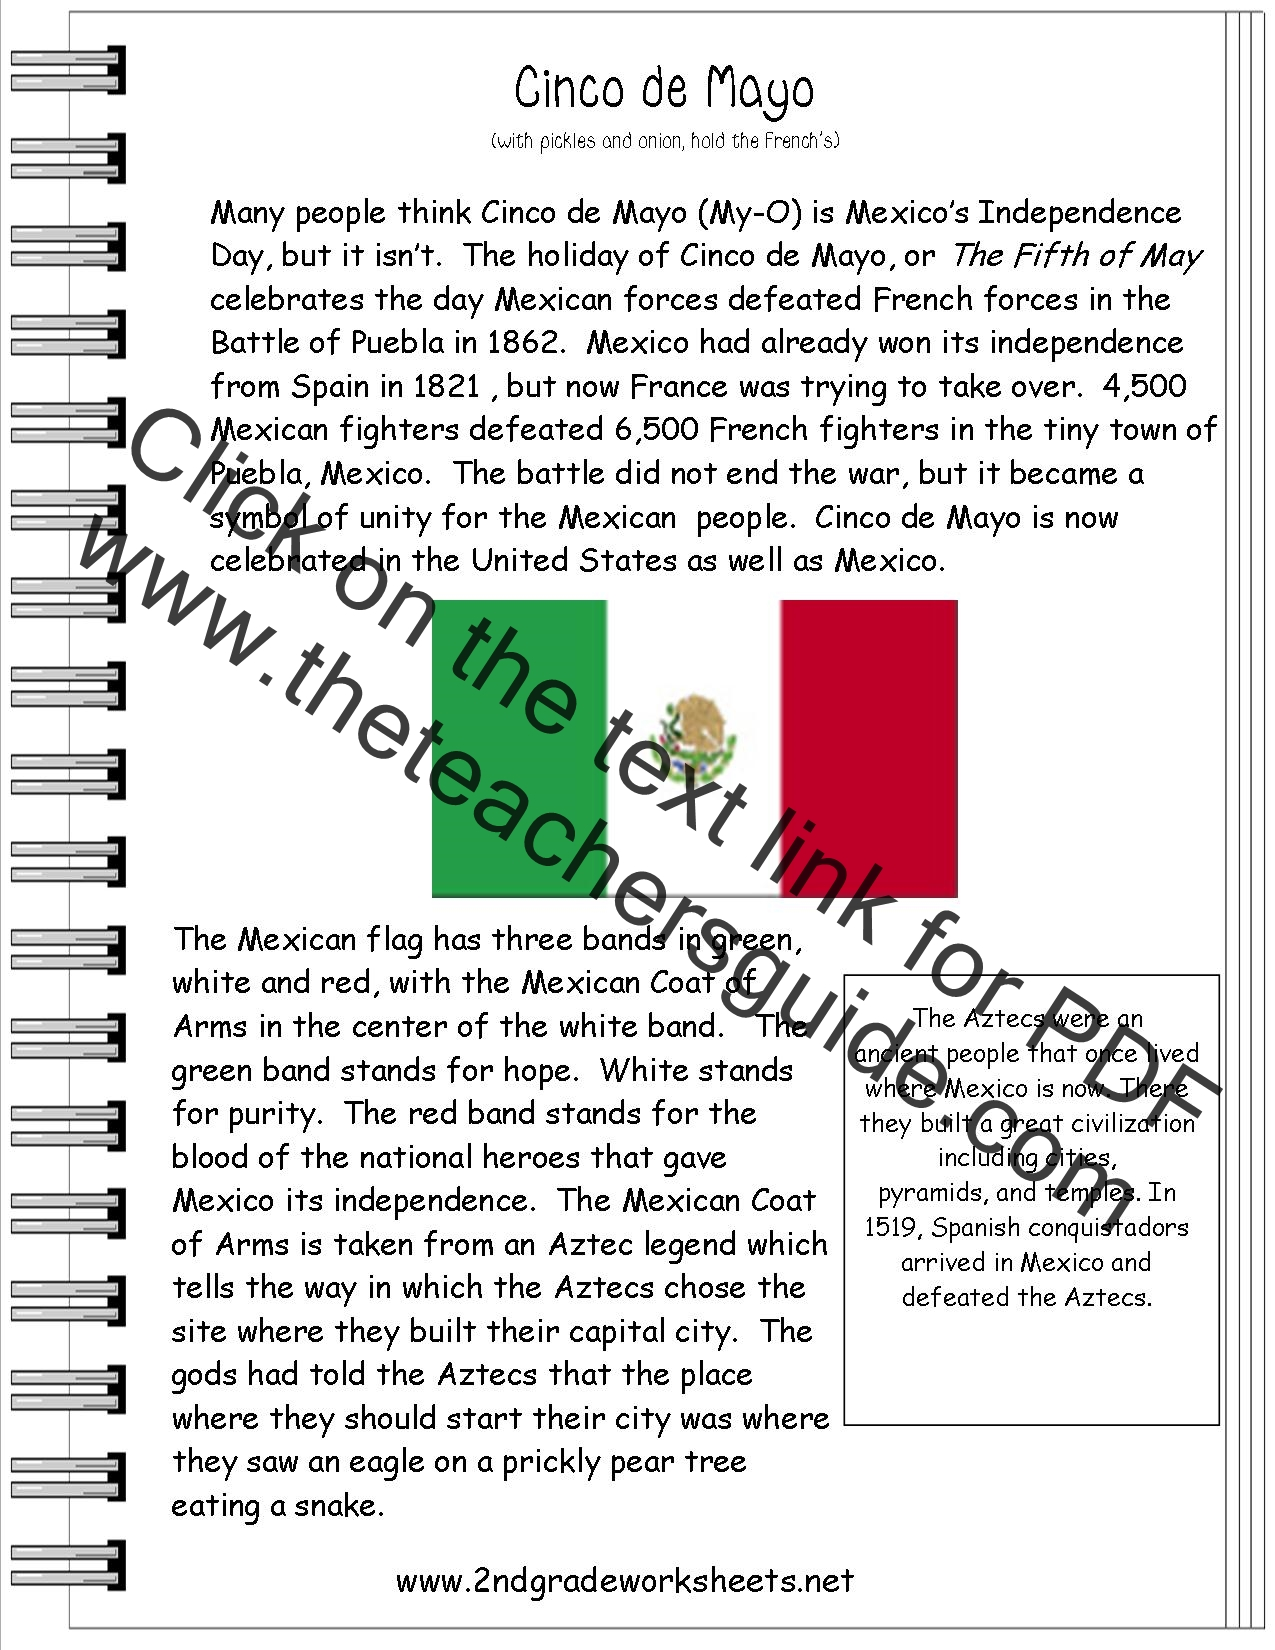 Worksheet Reading Comprehension For 2nd Graders reading informational text worksheets worksheets